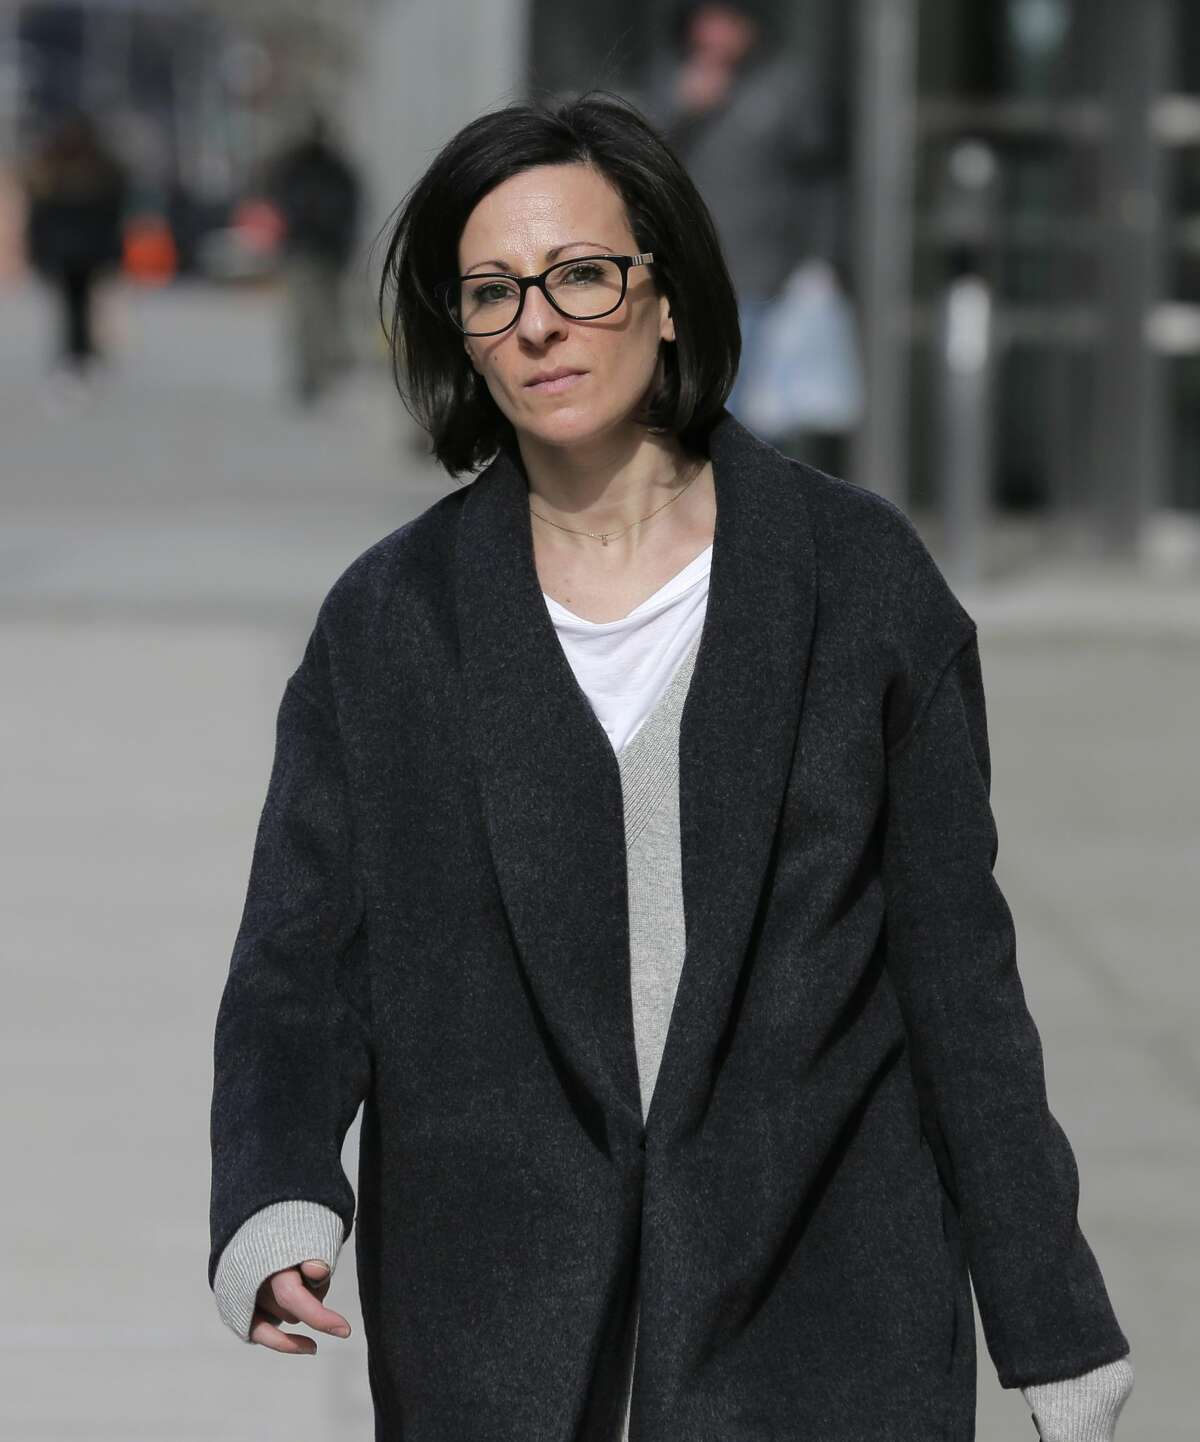 Lauren Salzman leaves Brooklyn federal court in New York, Monday, Jan. 28, 2019. Salzman is among defendants from the self-help group NXIVM, co-founded my her mother Nancy Salzman, charged with coercing women to be a part of a secret sub-group where they were expected to act as